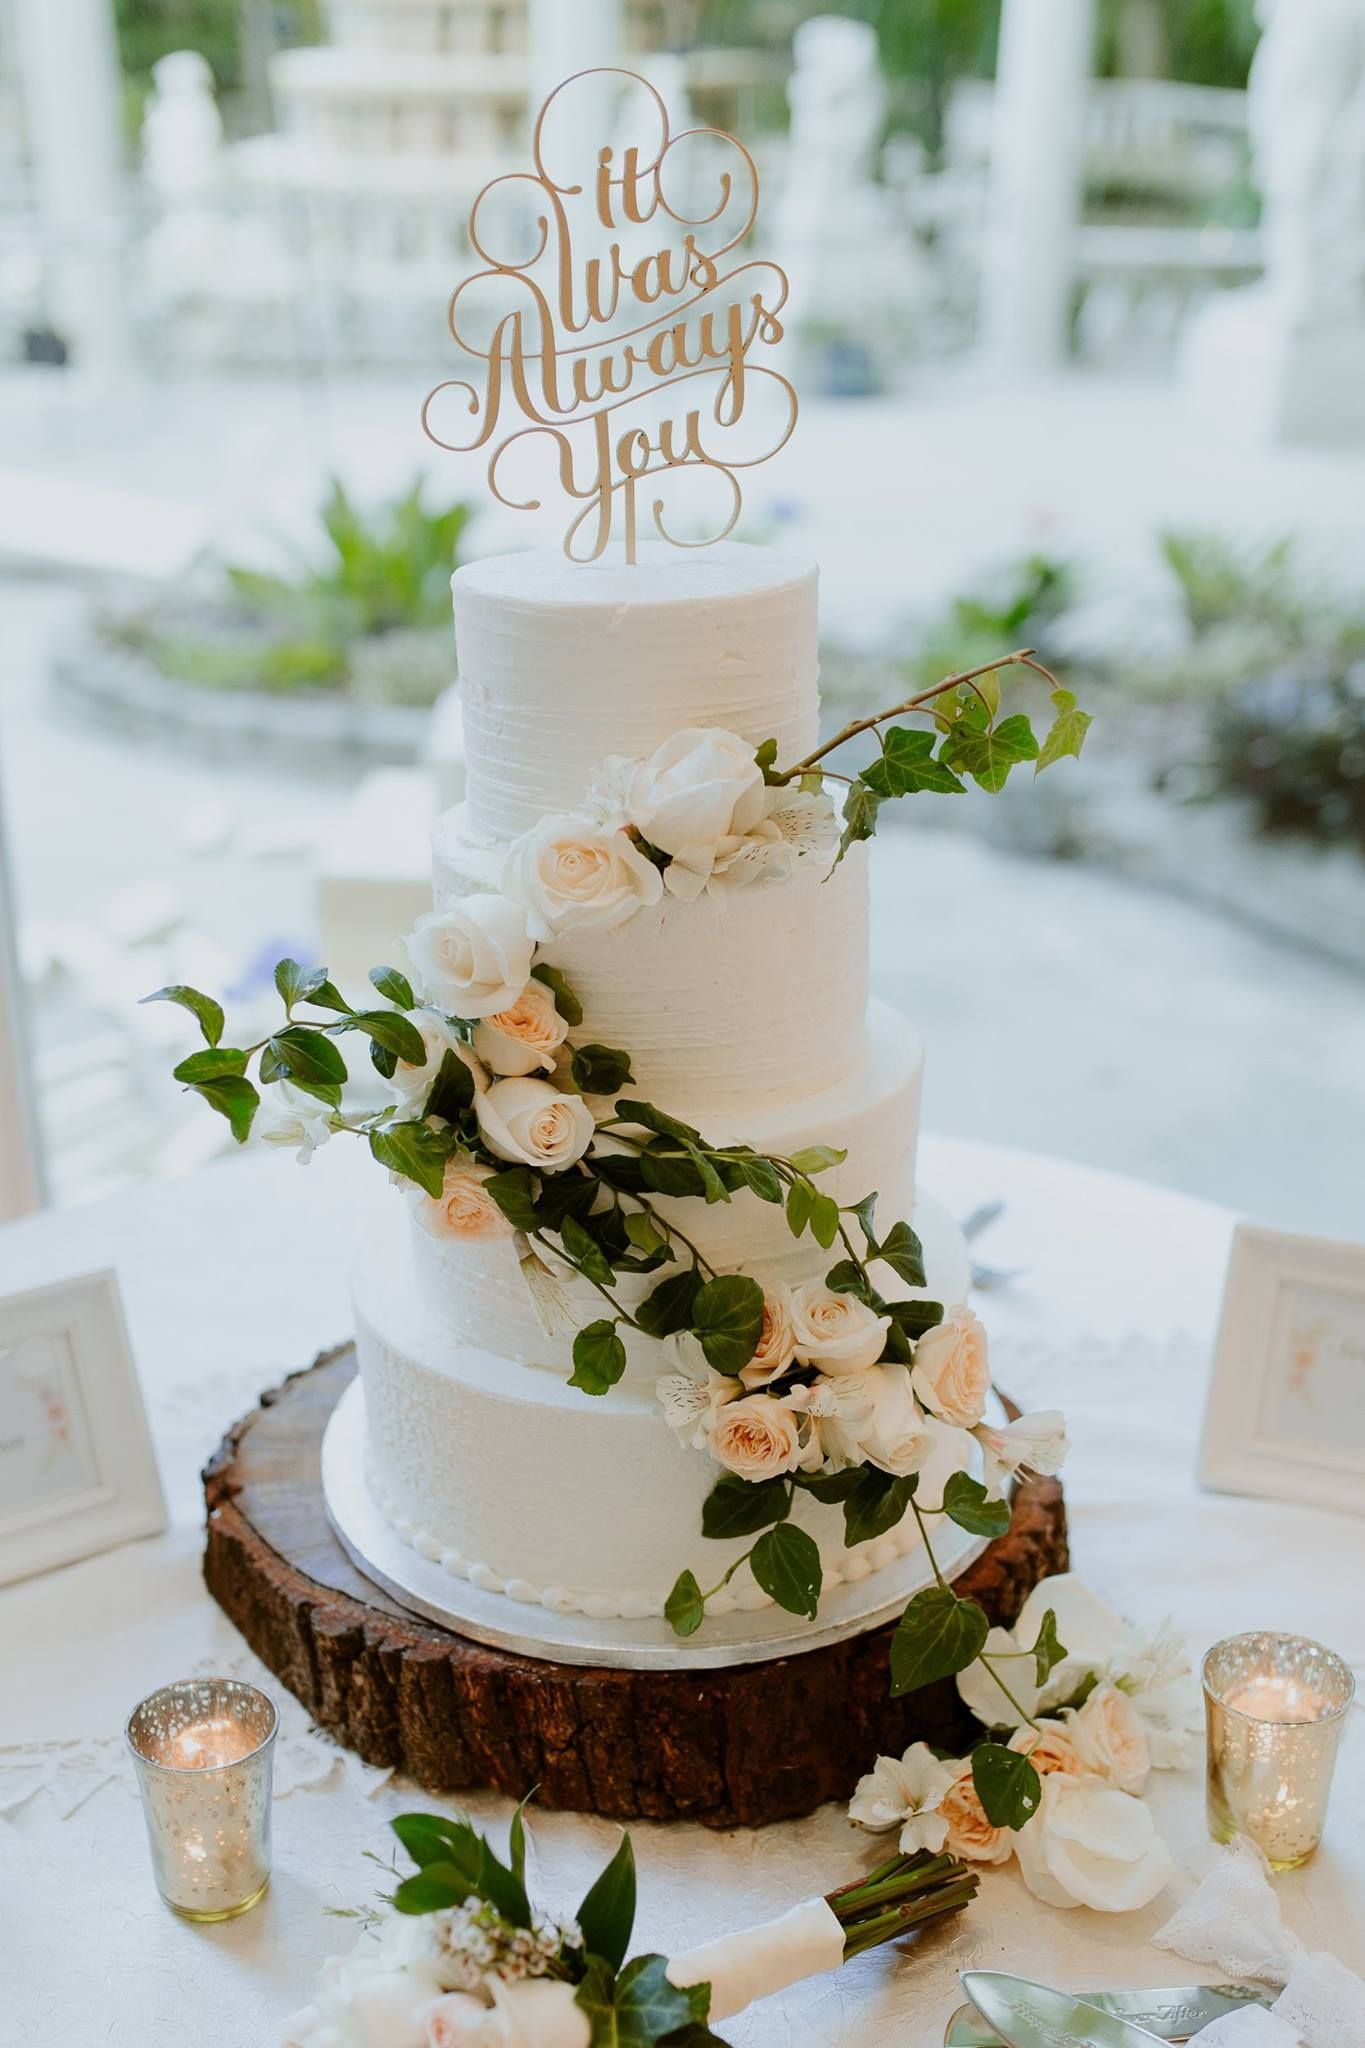 Perfect Rustic Boho Simple Wedding Cake With Real Roses And Ivy 3 By Publix Topper Etsy Seller Better Off Wed